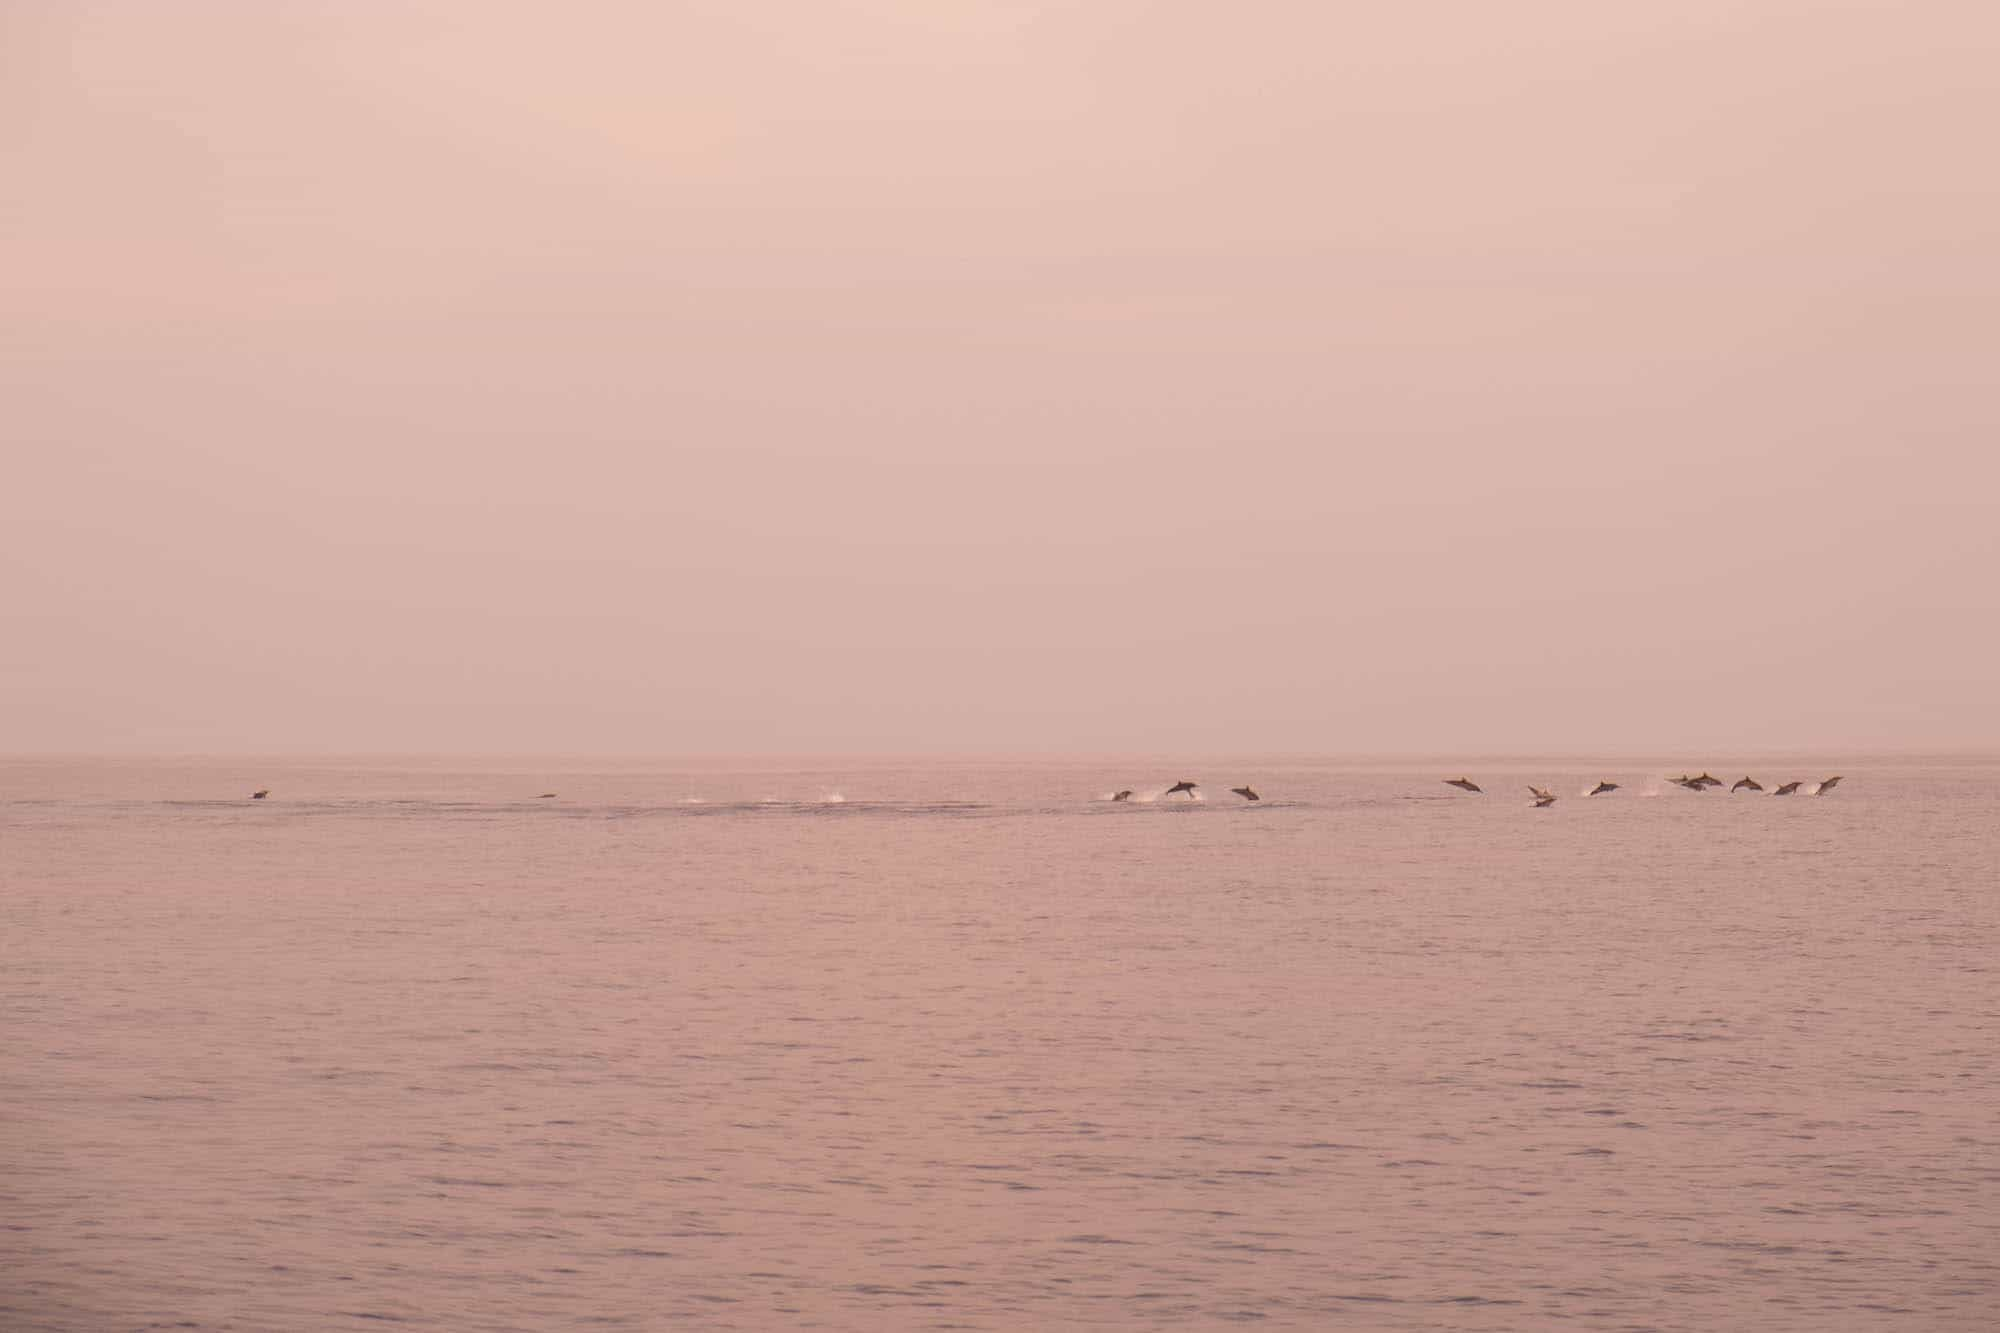 Dolphins in Maldives